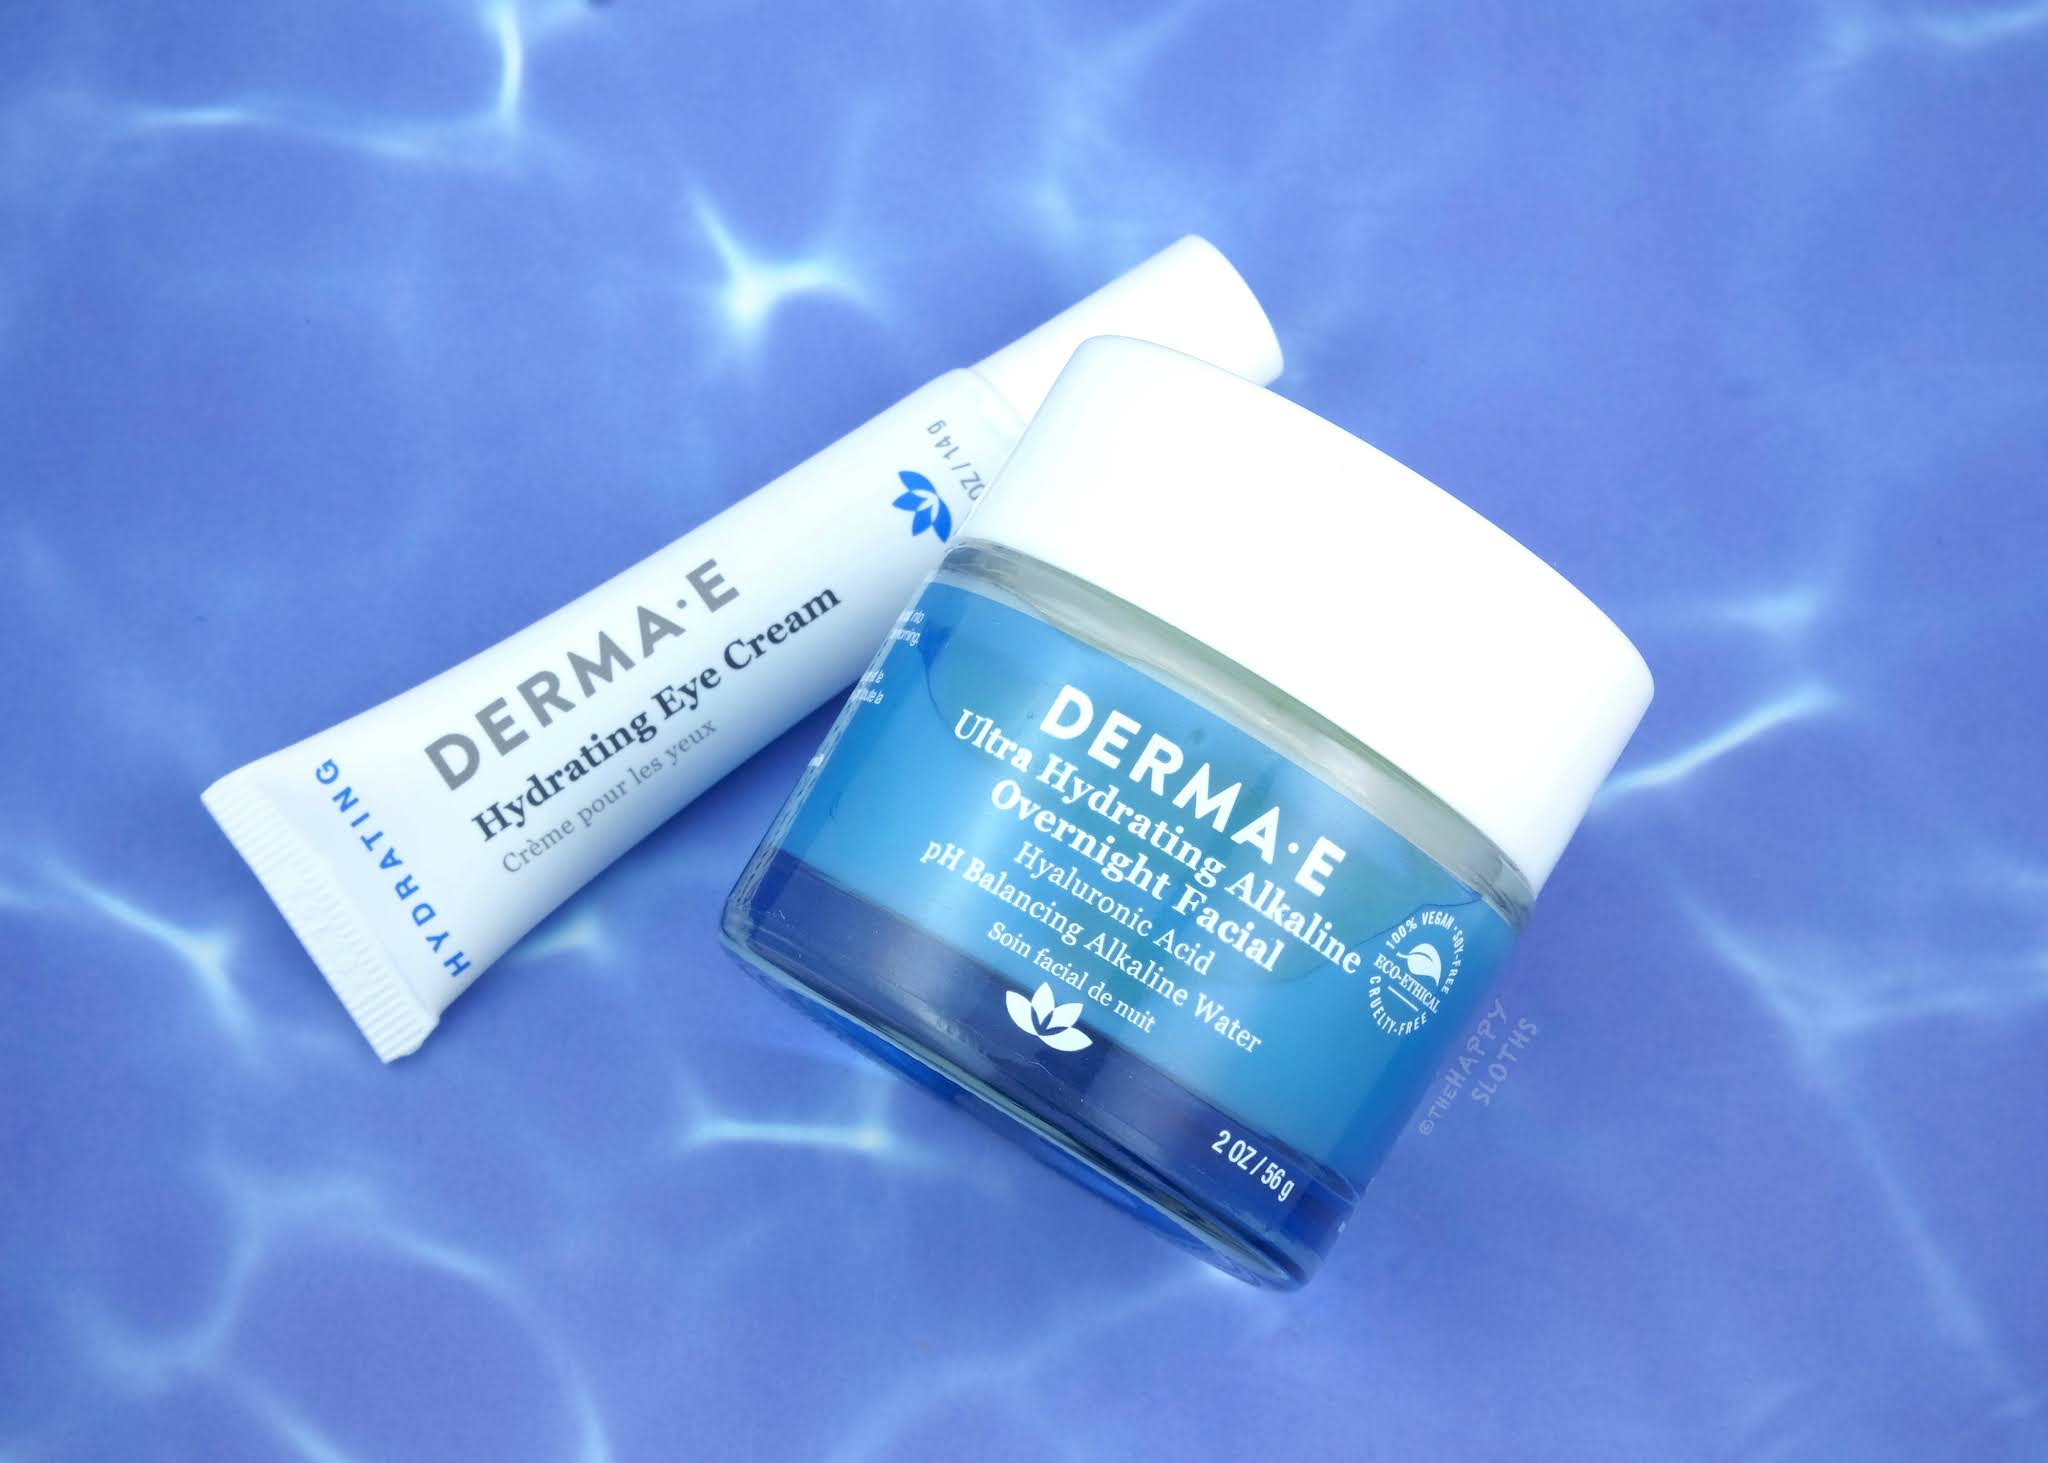 Derma E | Hydrating Eye Cream & Ultra Hydrating Alkaline Overnight Facial: Review